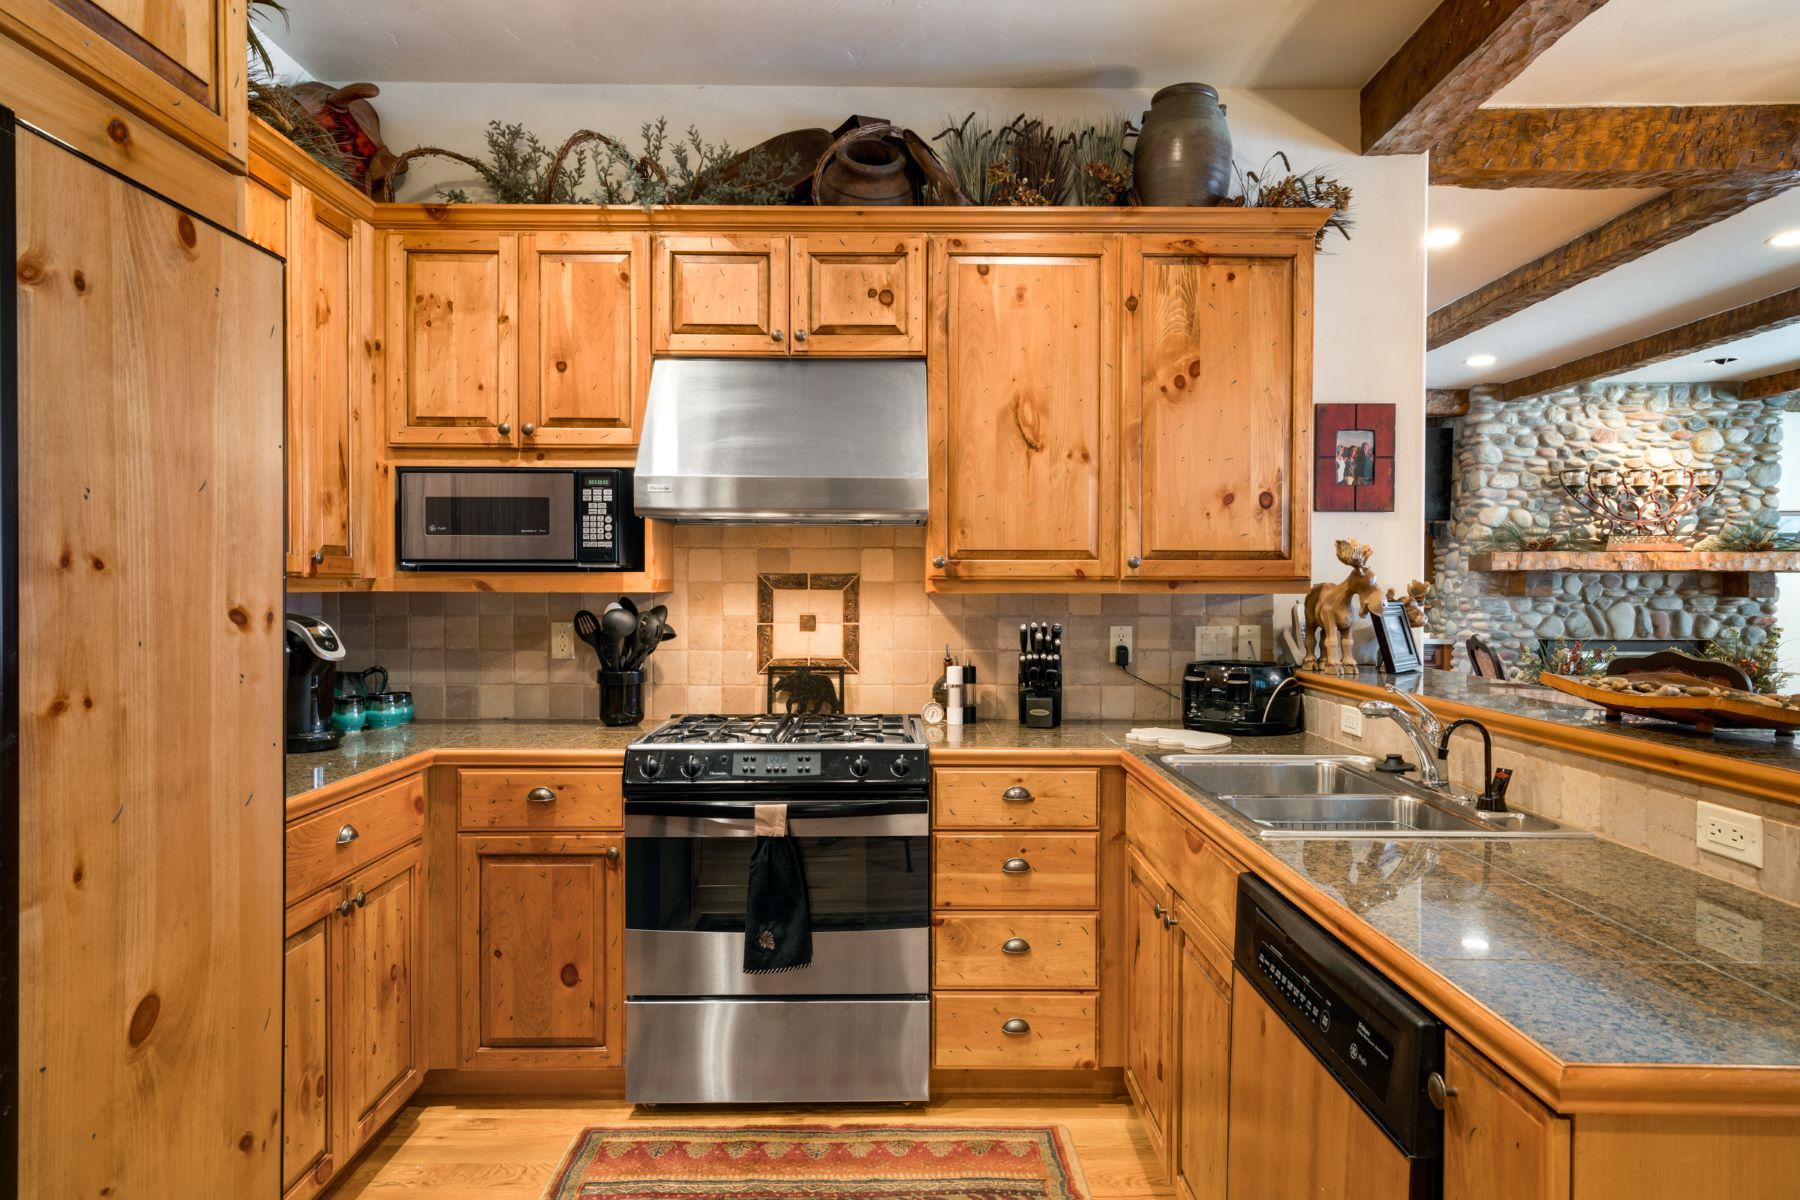 Additional photo for property listing at Lake Catamount Cabin 30435 Lakeshore Trail Steamboat Springs, Colorado 80487 United States